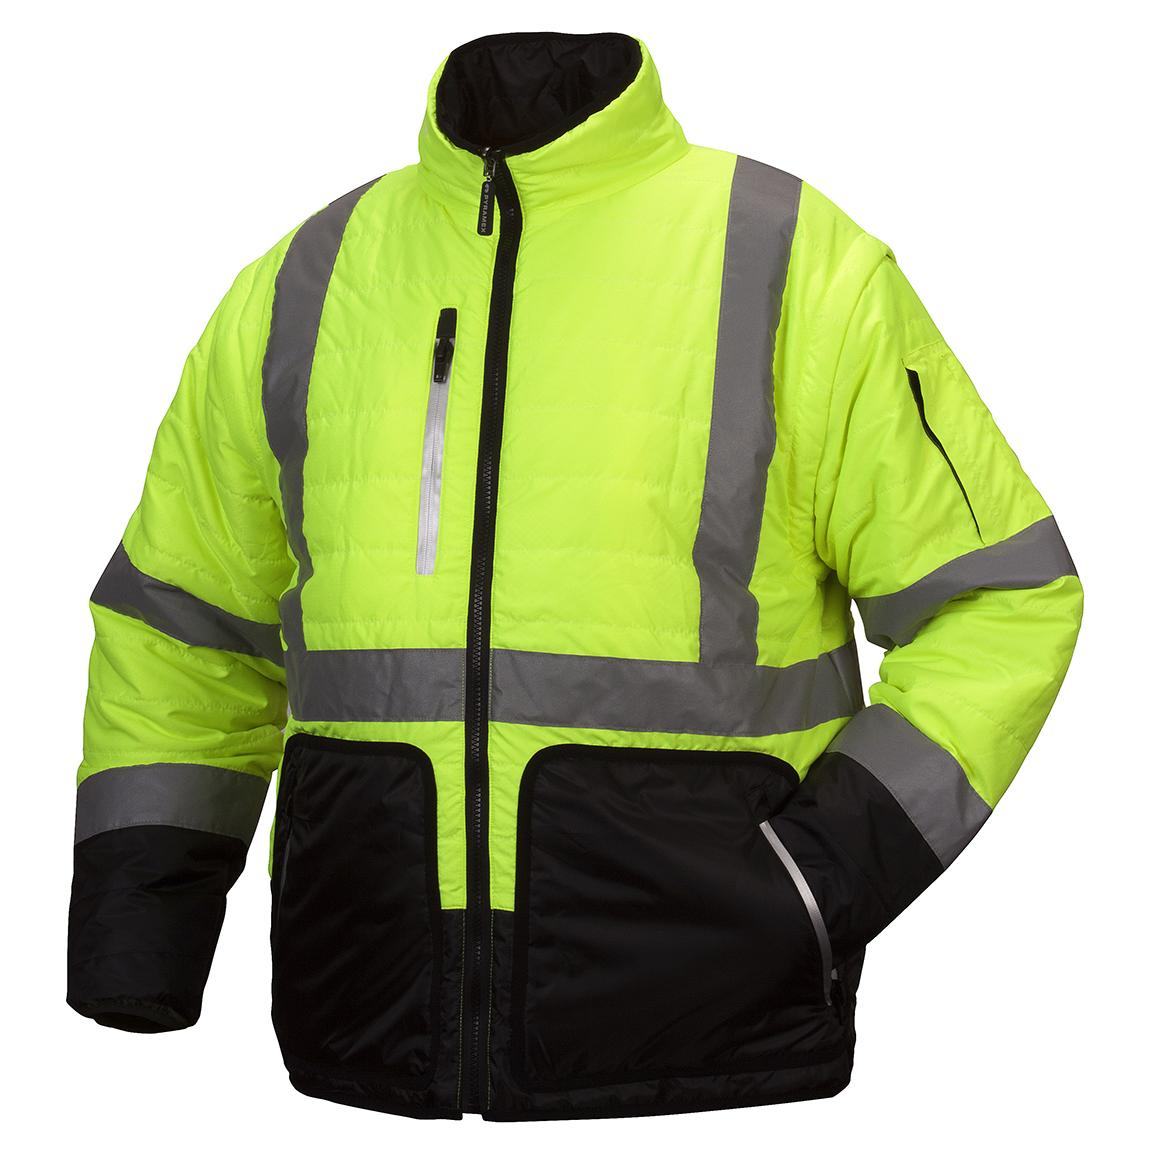 a0486377c Outerwear - 3-in-1 Jackets | Hi-Viz Safety Wear High Visibility ...